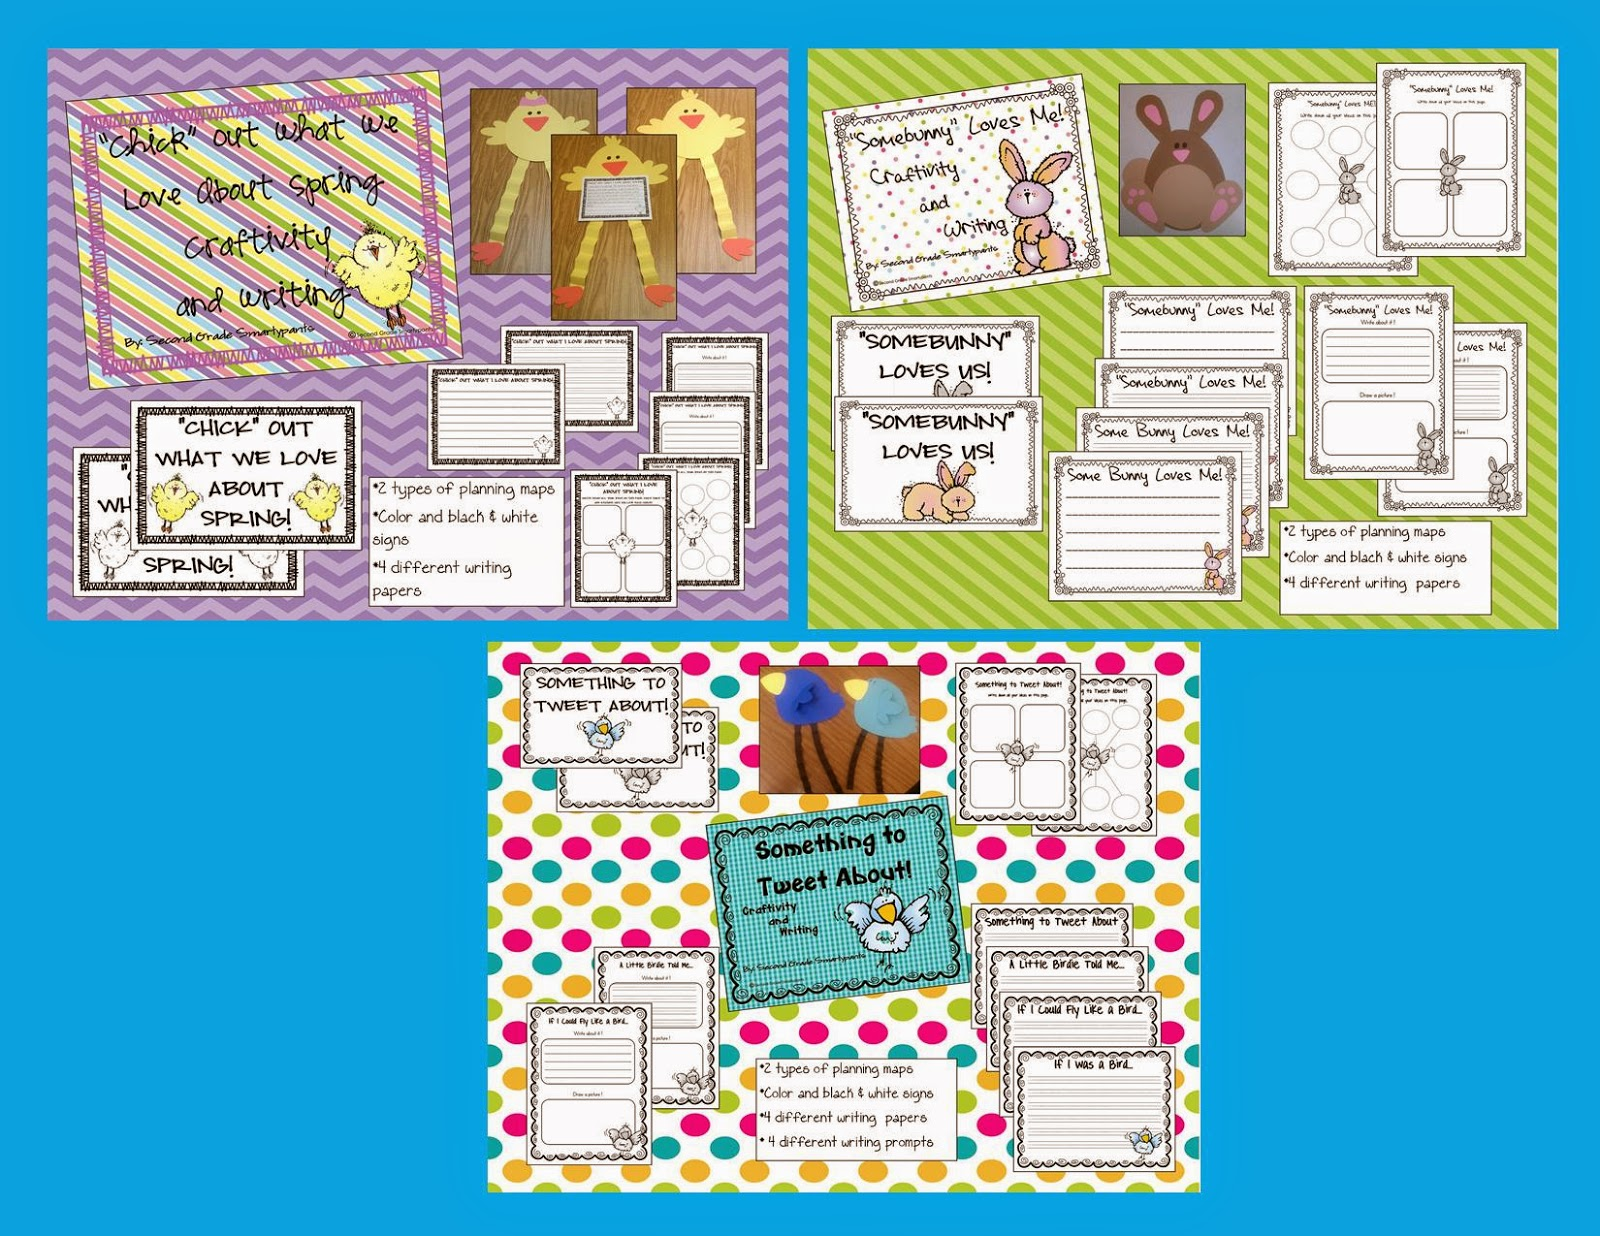 https://www.teacherspayteachers.com/Product/Spring-Craftivity-and-Writing-Activity-Bundle-629612